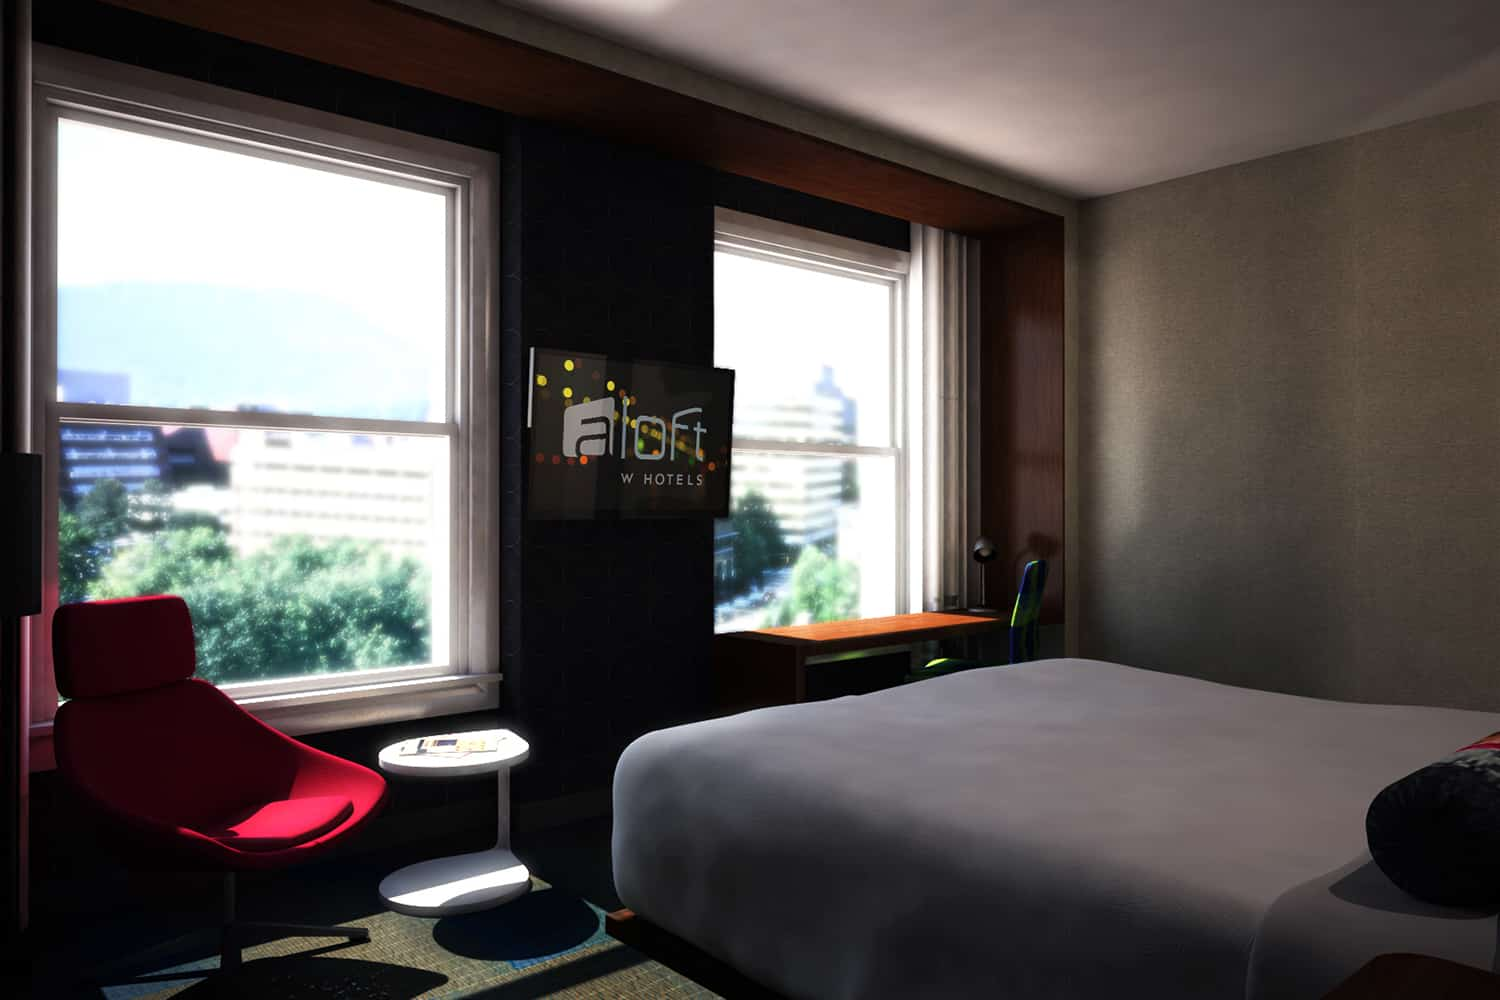 Aloft-Hotel-bedroom-concept-art